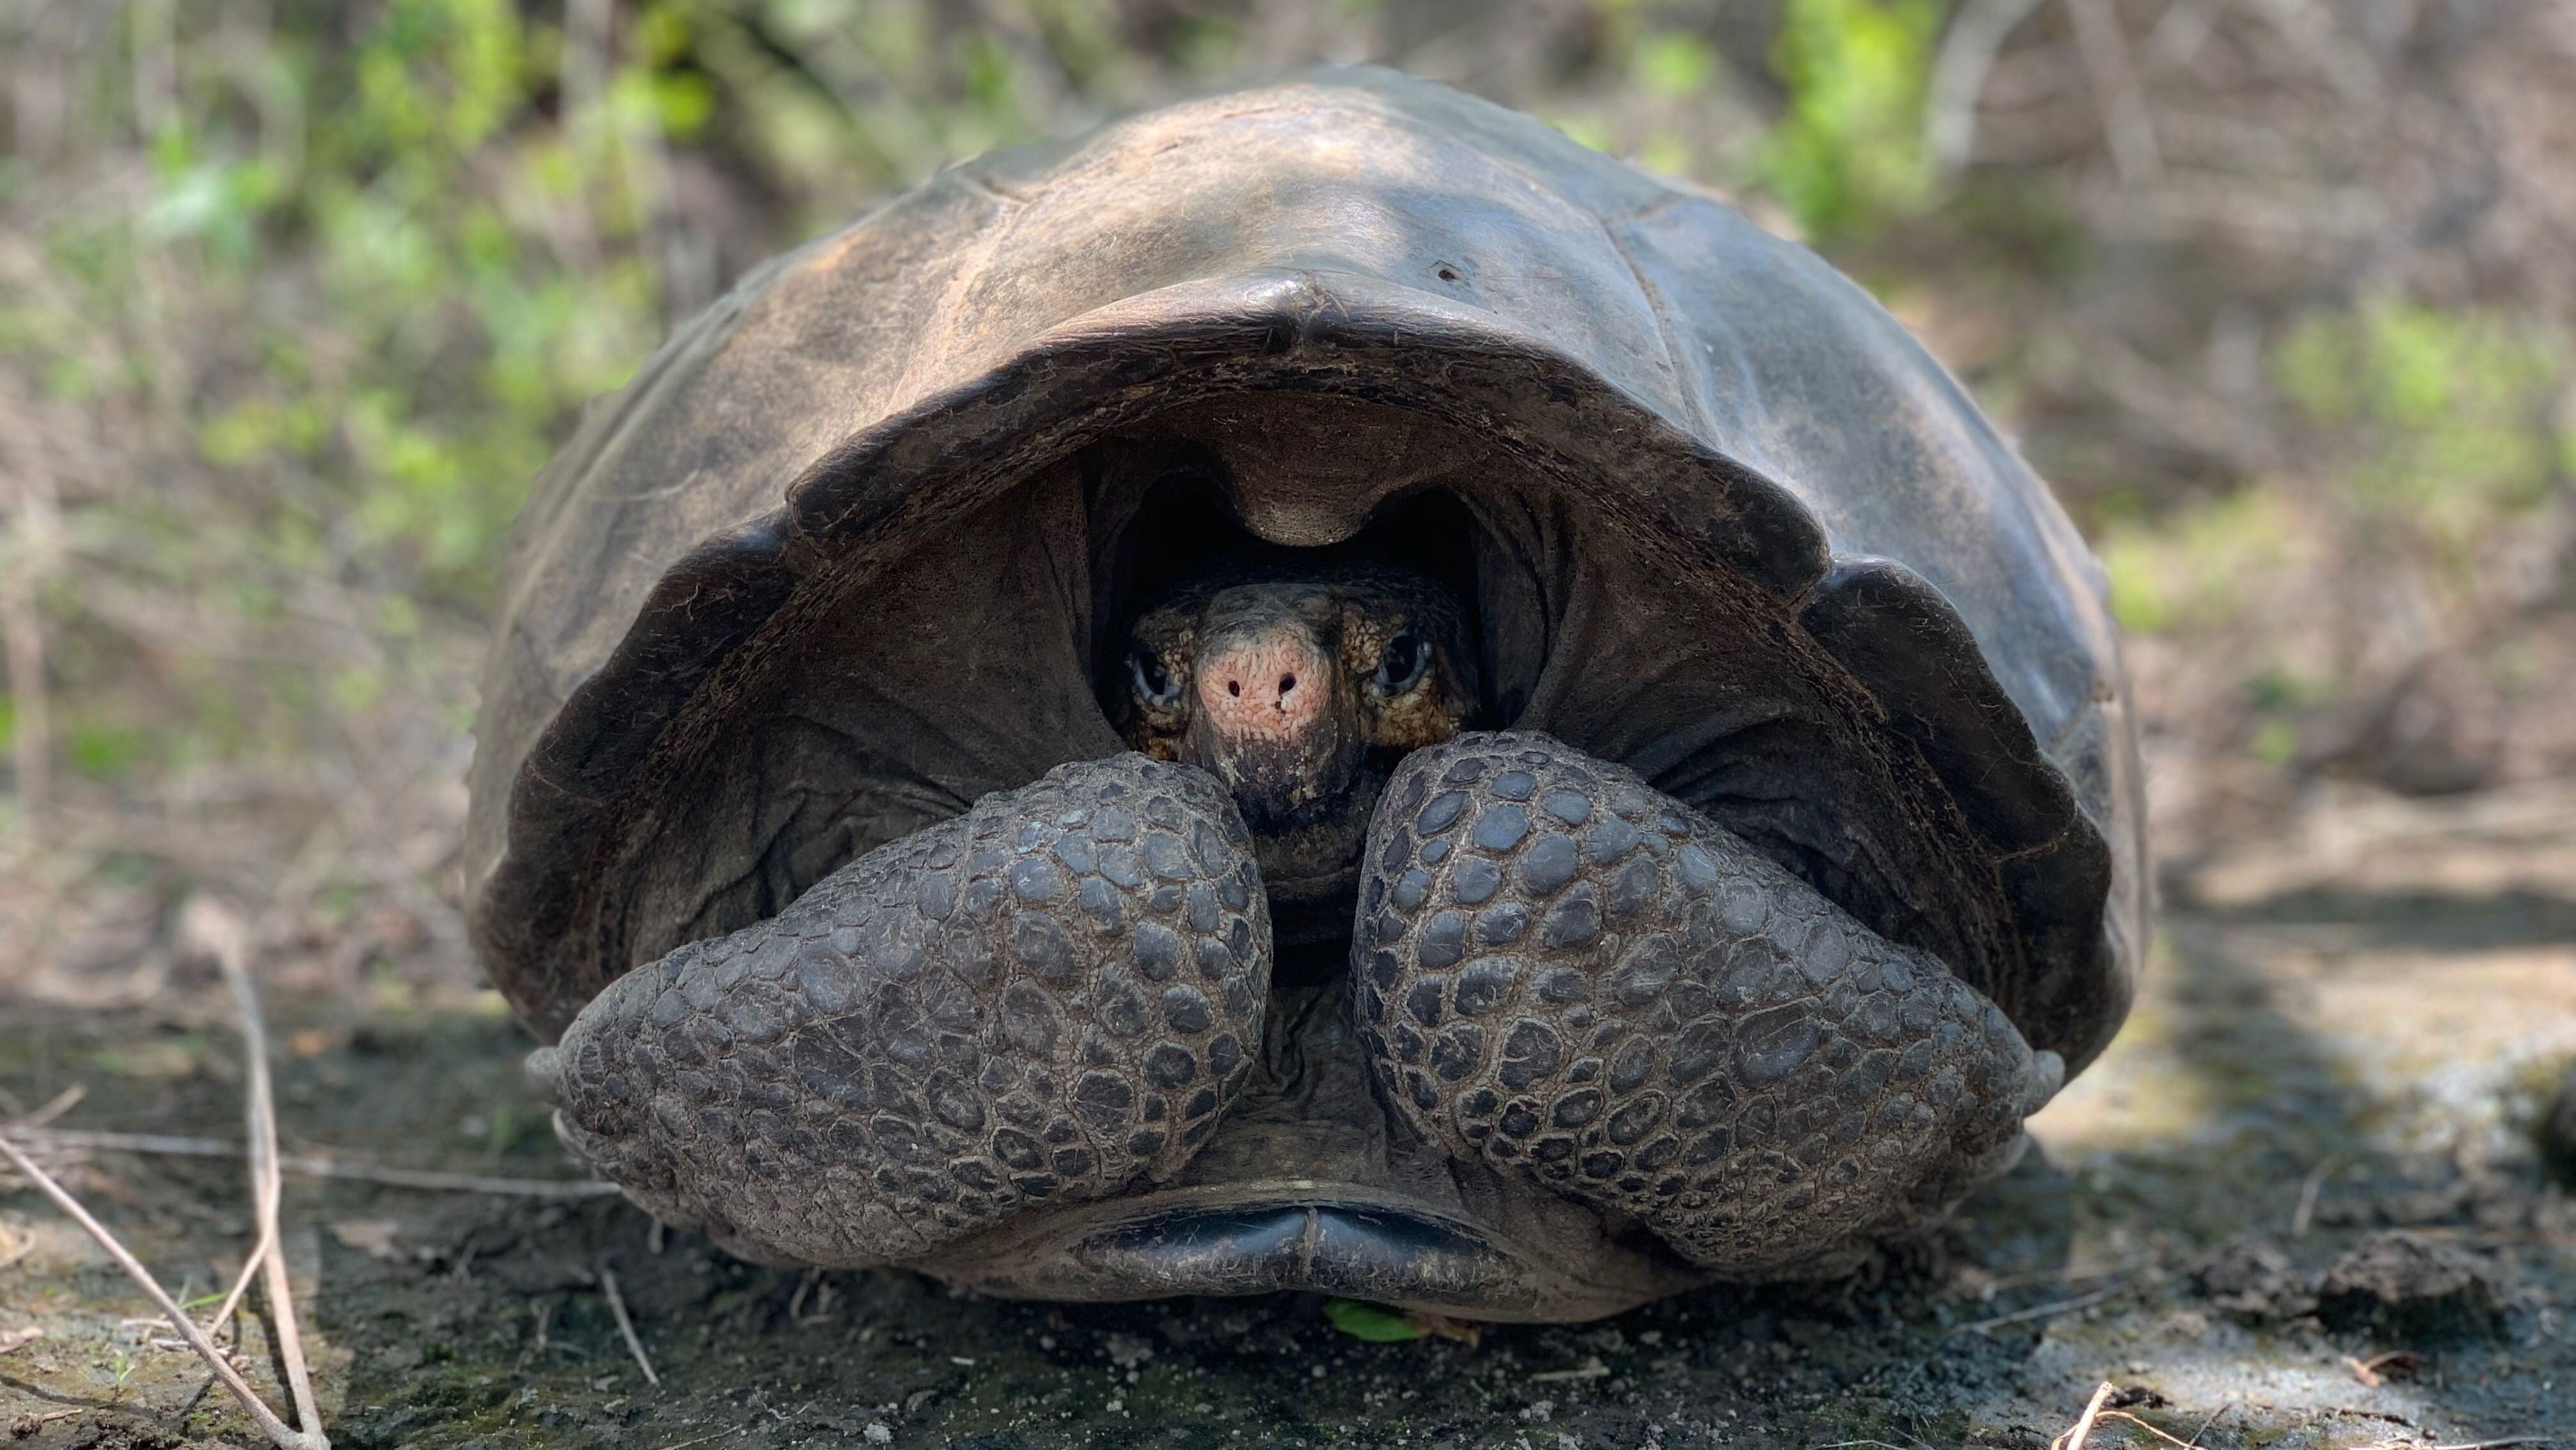 Giant Tortoise Feared Extinct Rediscovered In The Galápagos After 113 Years